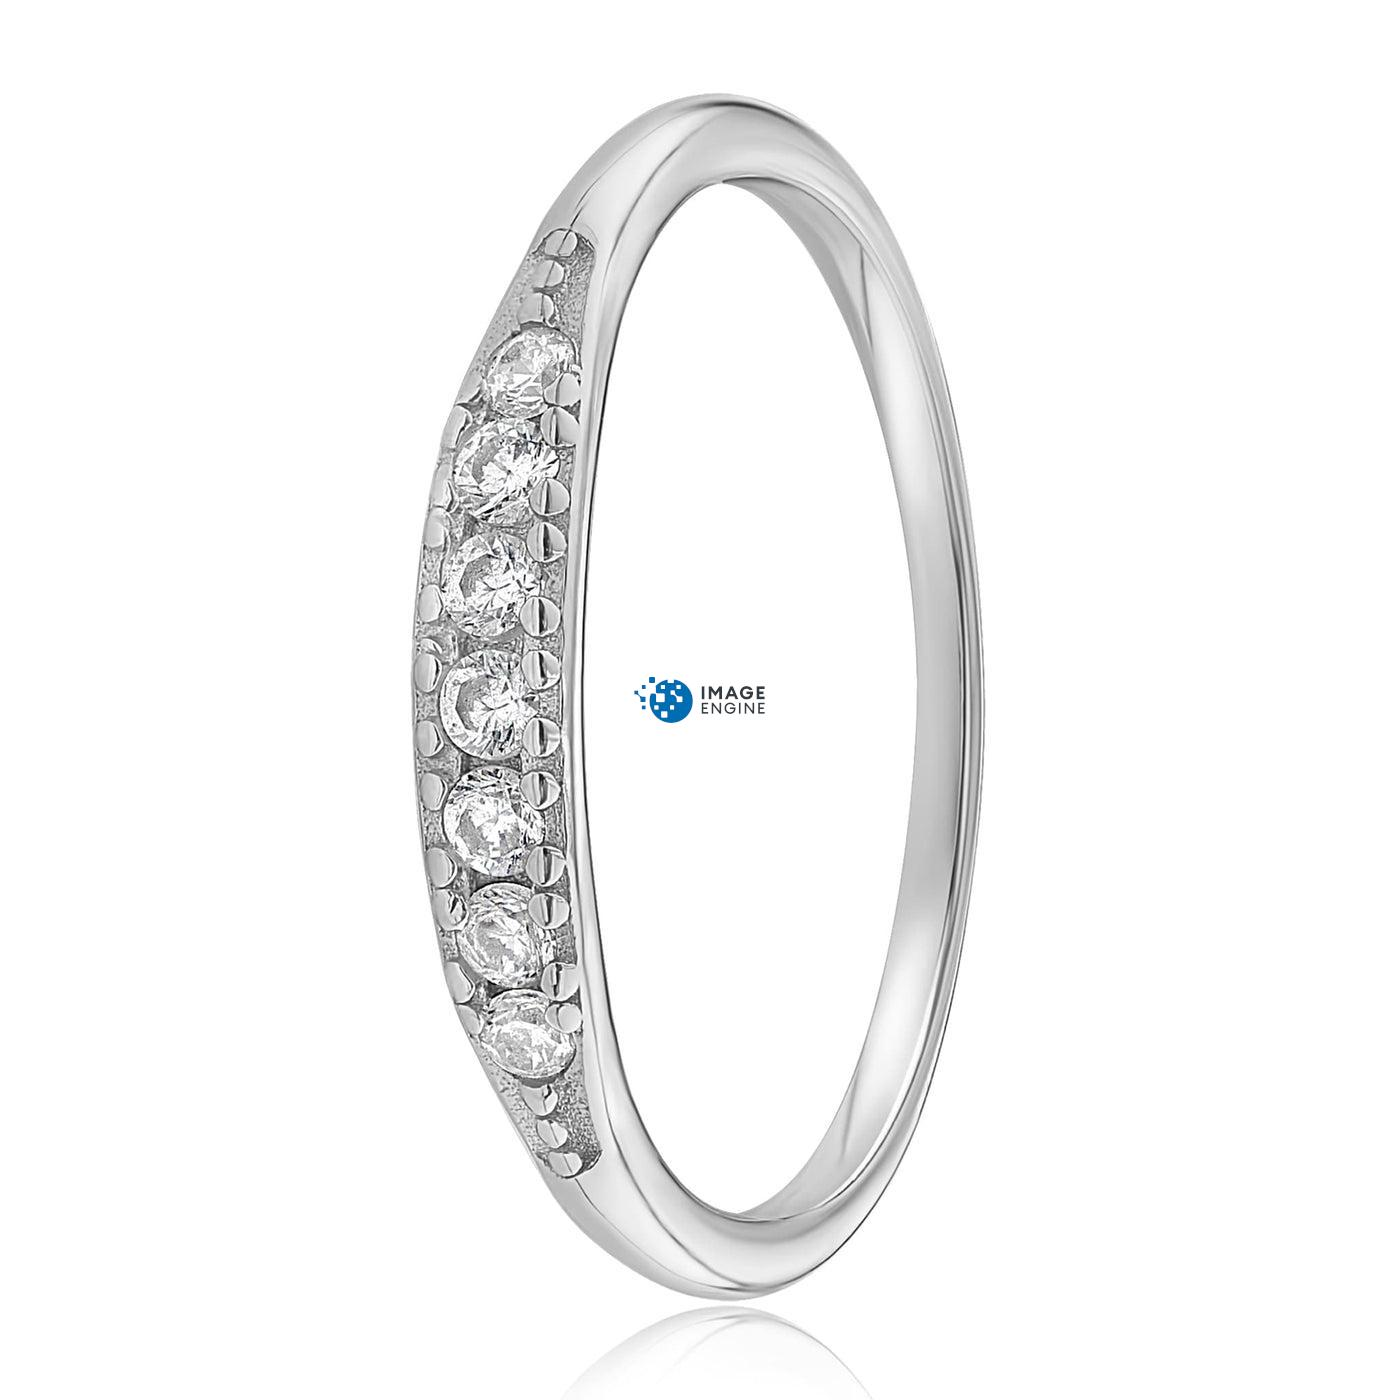 Kathleen Stack Ring - Side View - 925 Sterling Silver